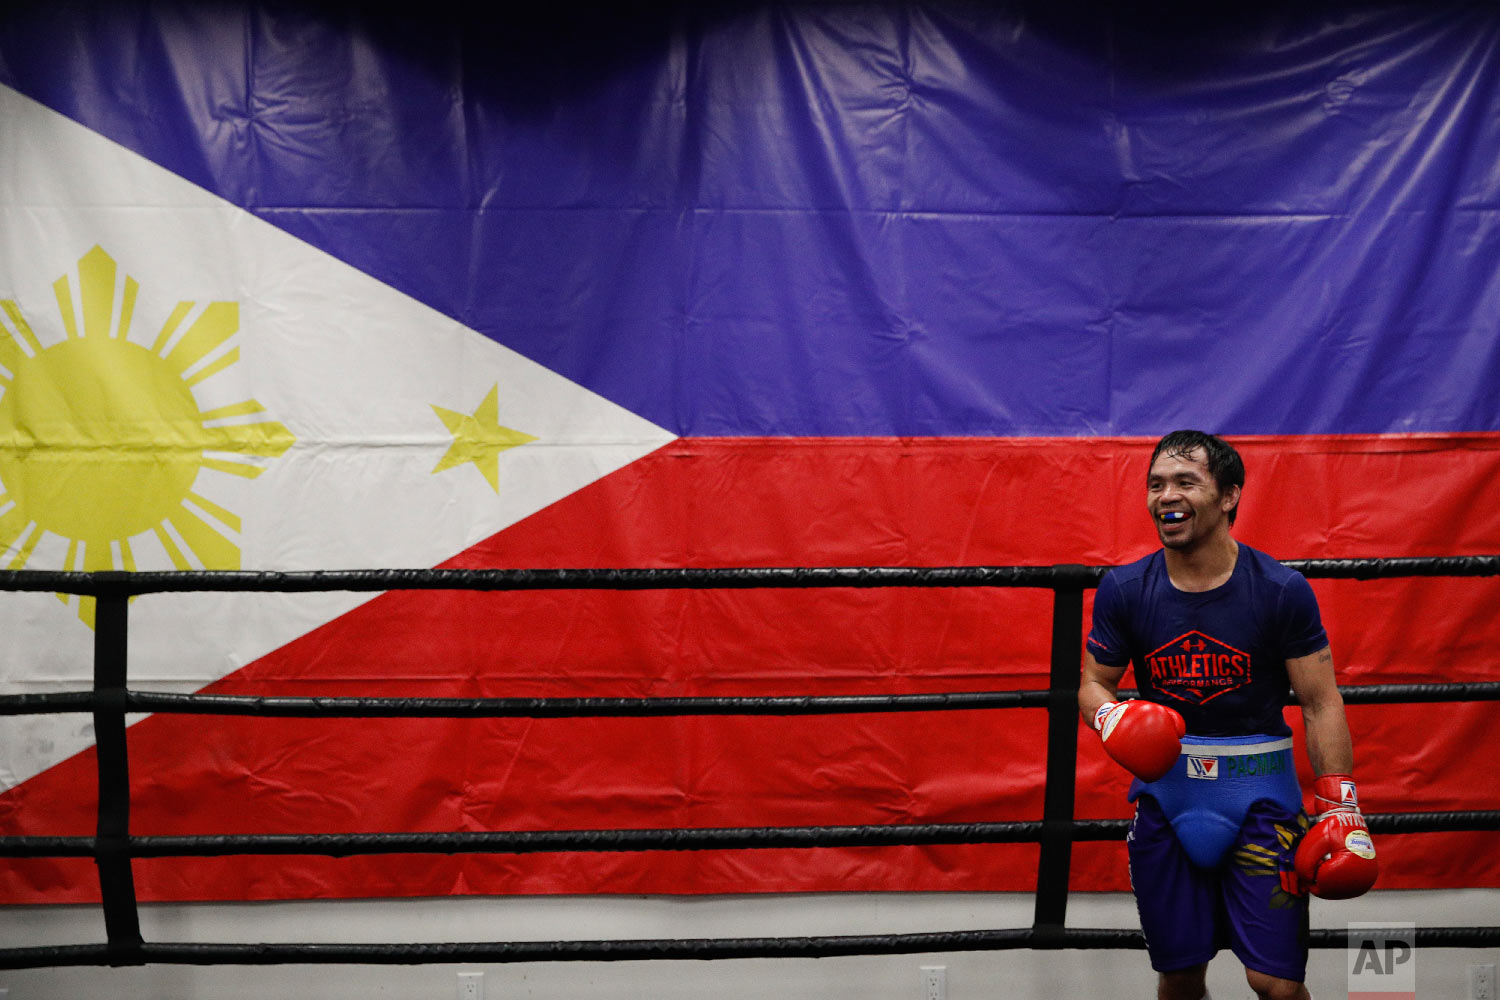 Standing in front of a large Filipino flag, boxer Manny Pacquiao smiles while training at the Wild Card Boxing Club on Jan. 14, 2019, in Los Angeles. (AP Photo/Jae C. Hong)